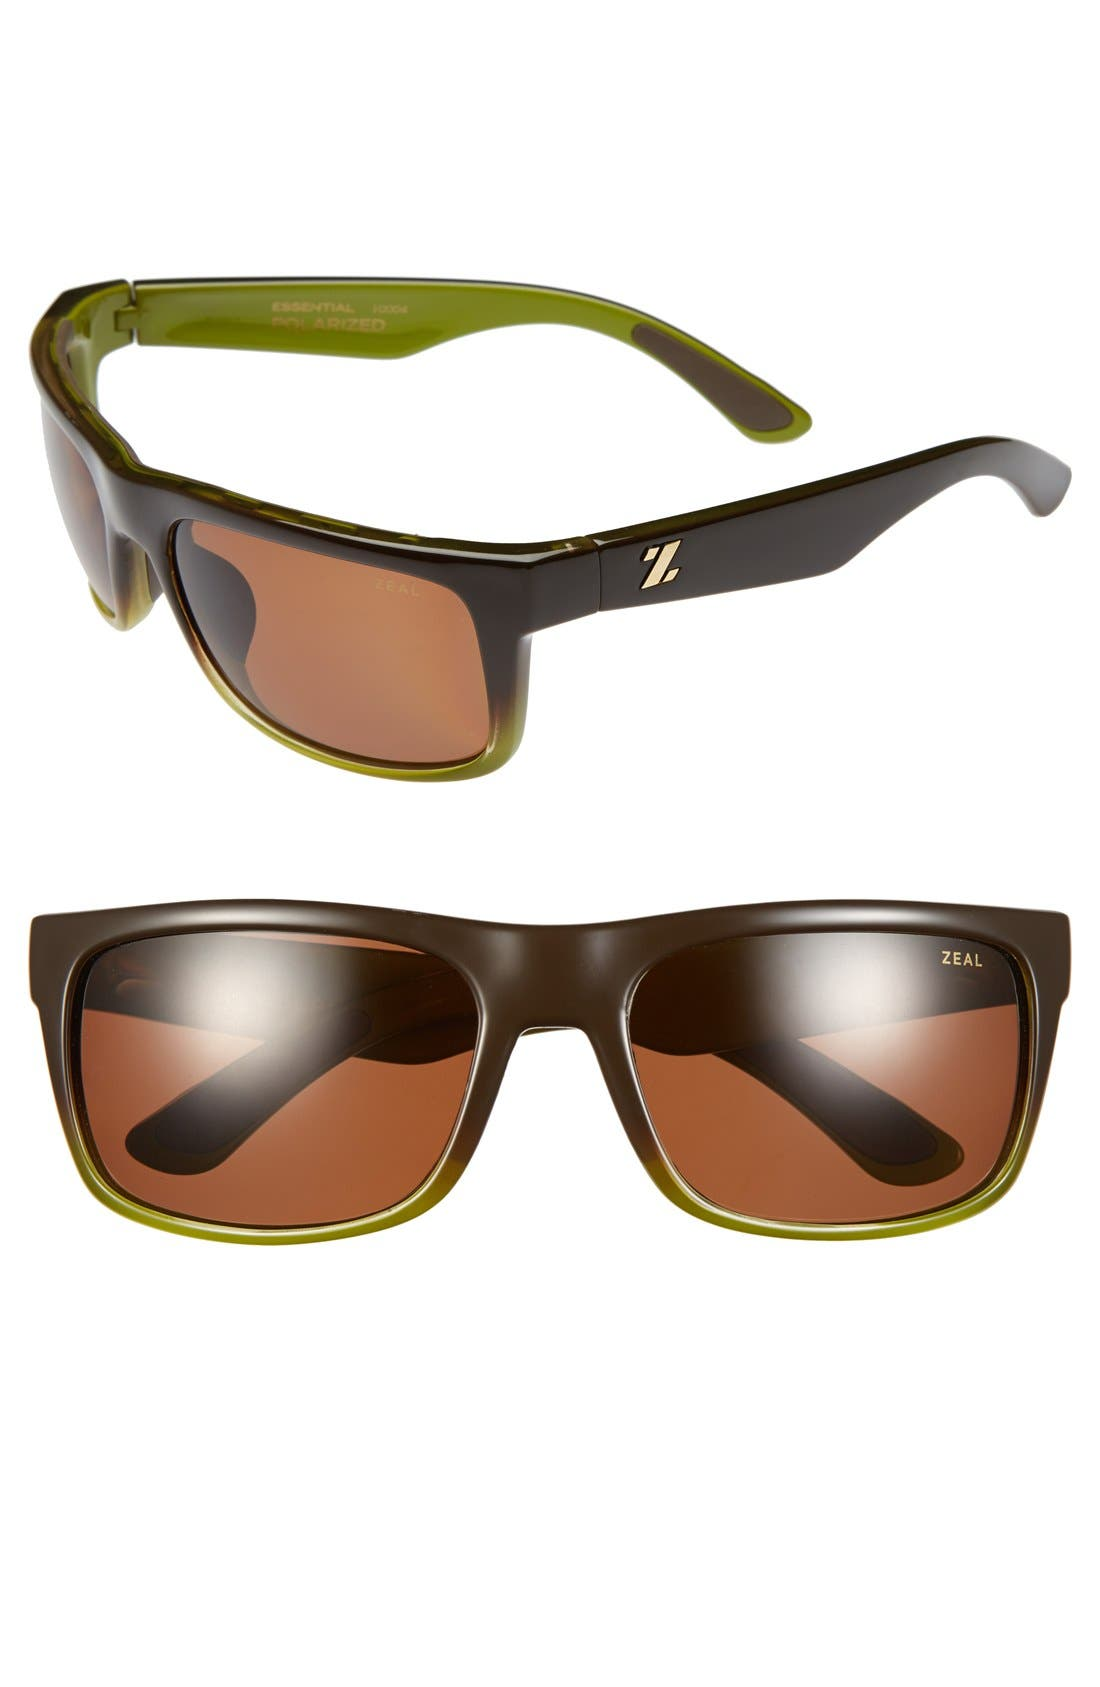 Main Image - Zeal Optics 'Essential' 58mm Polarized Plant Based Sunglasses